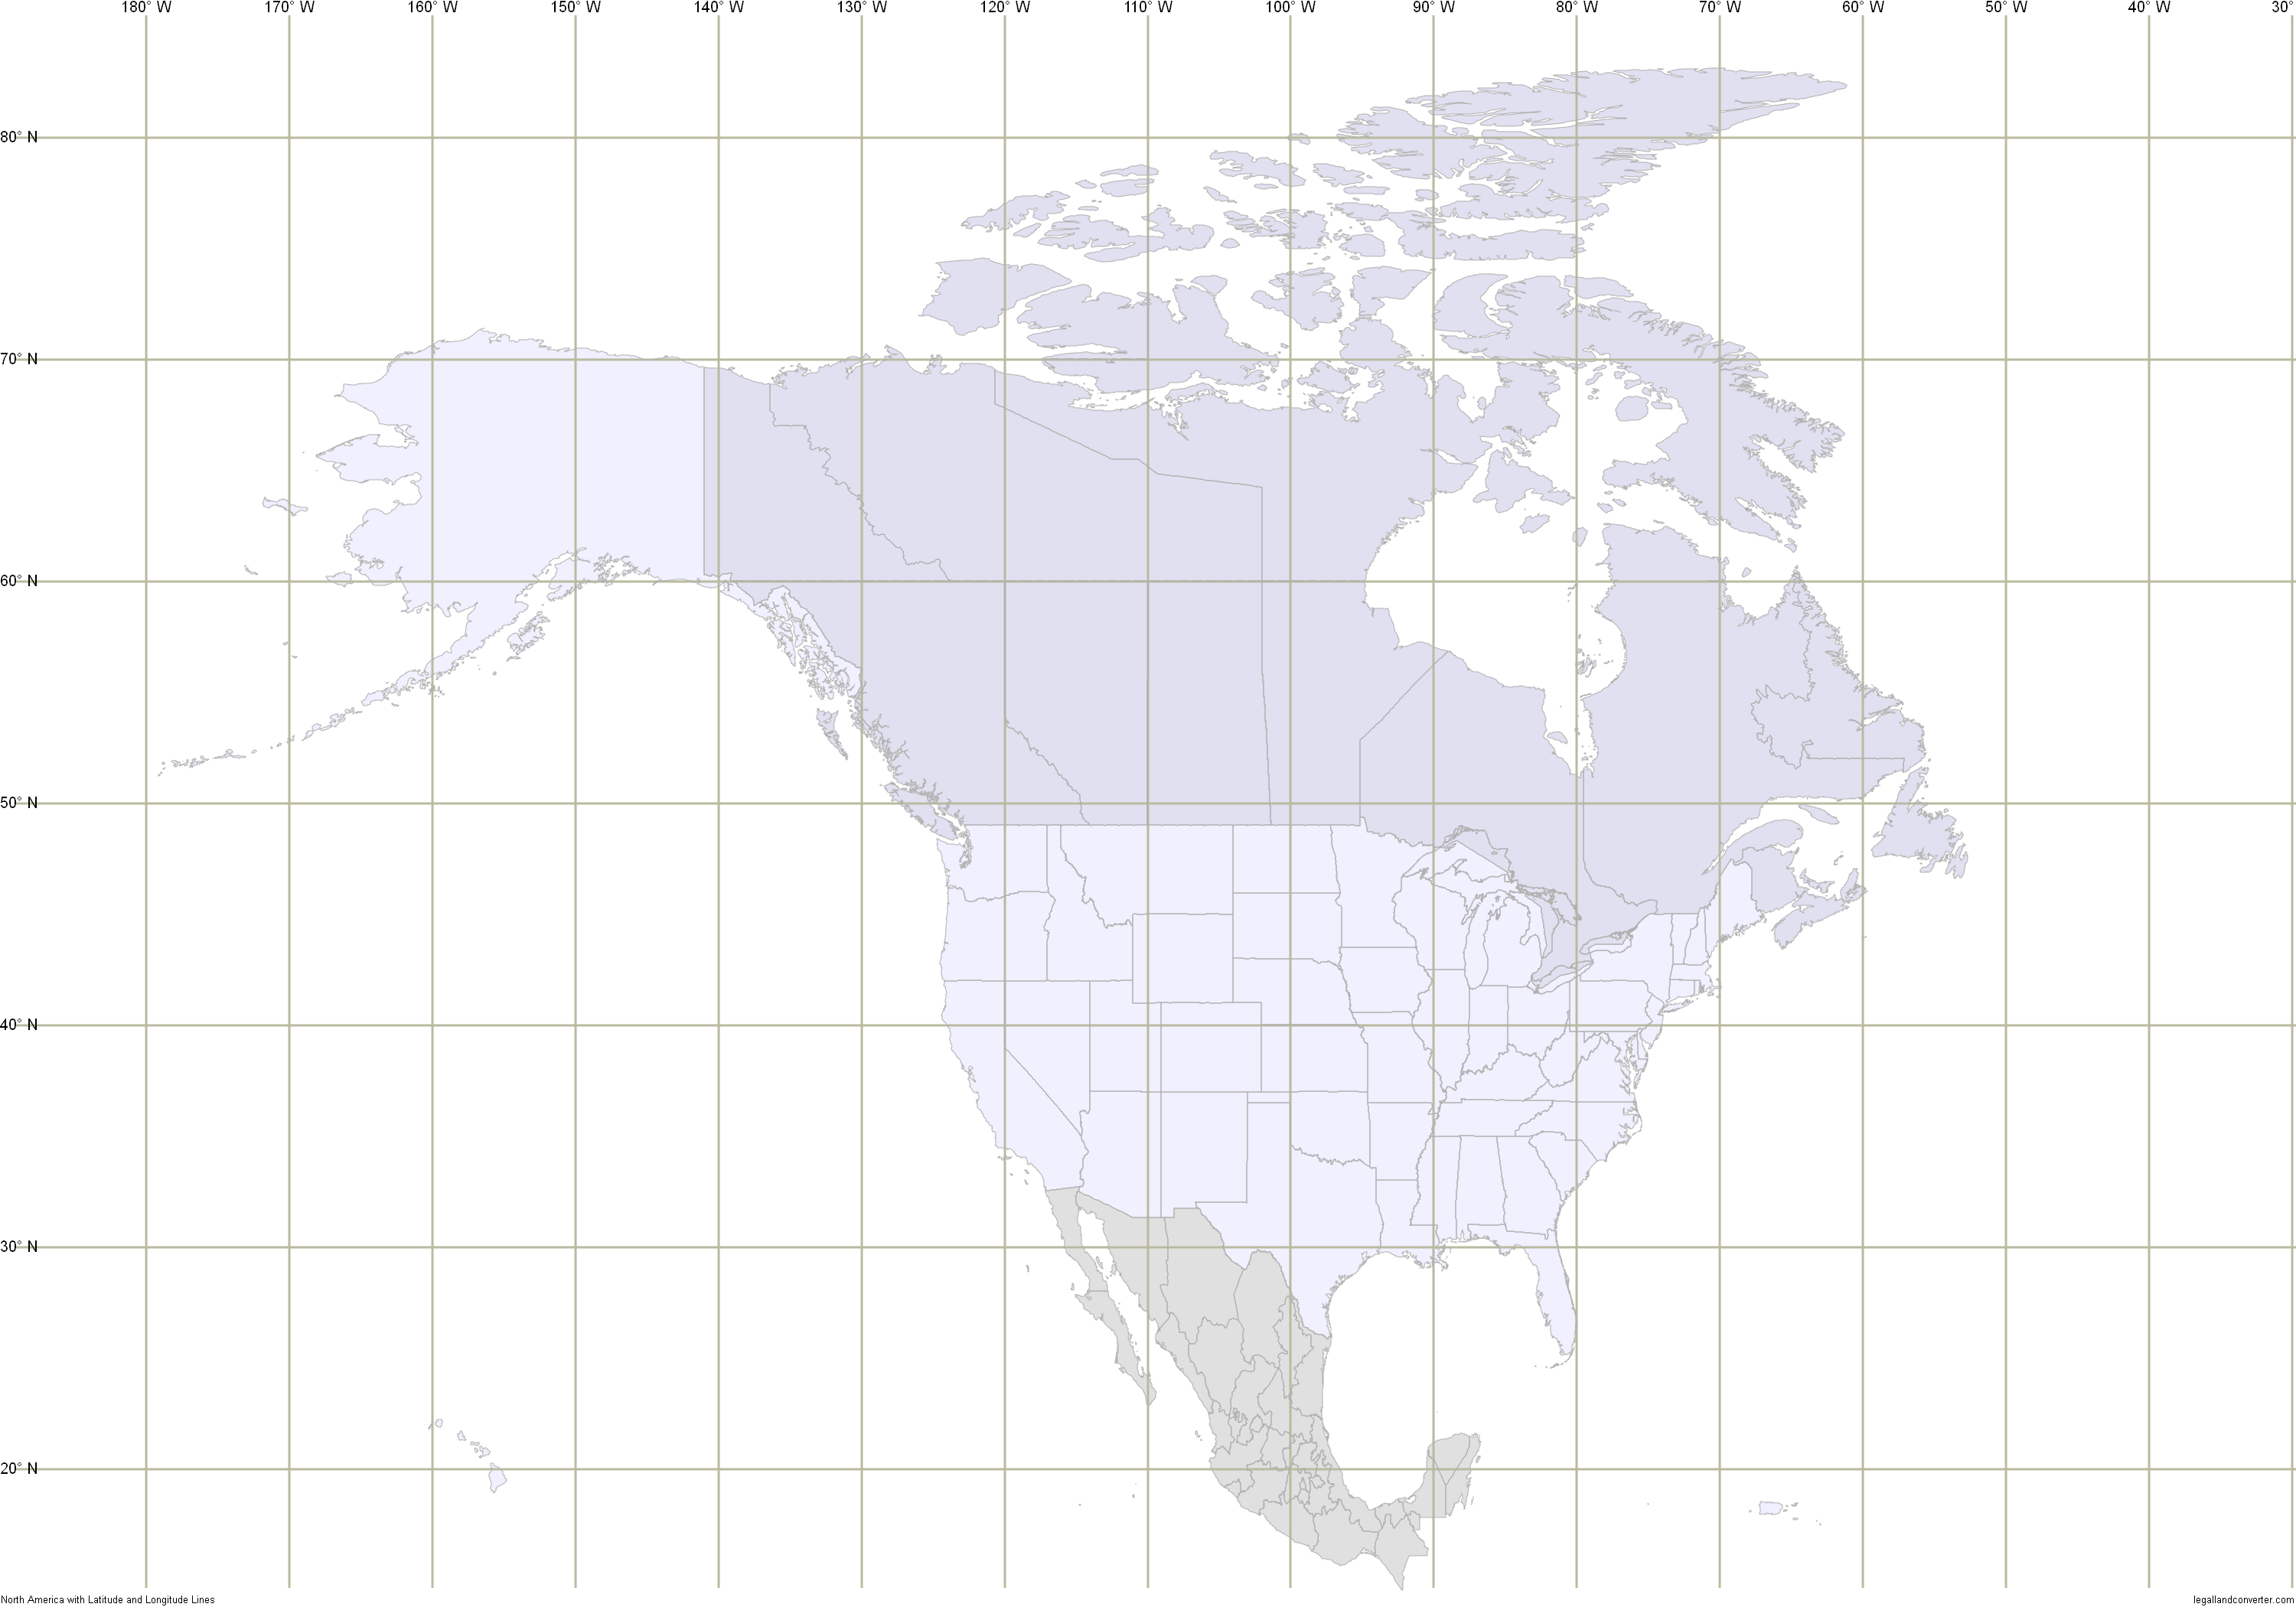 North America Map With Latitude And Longitude Lines